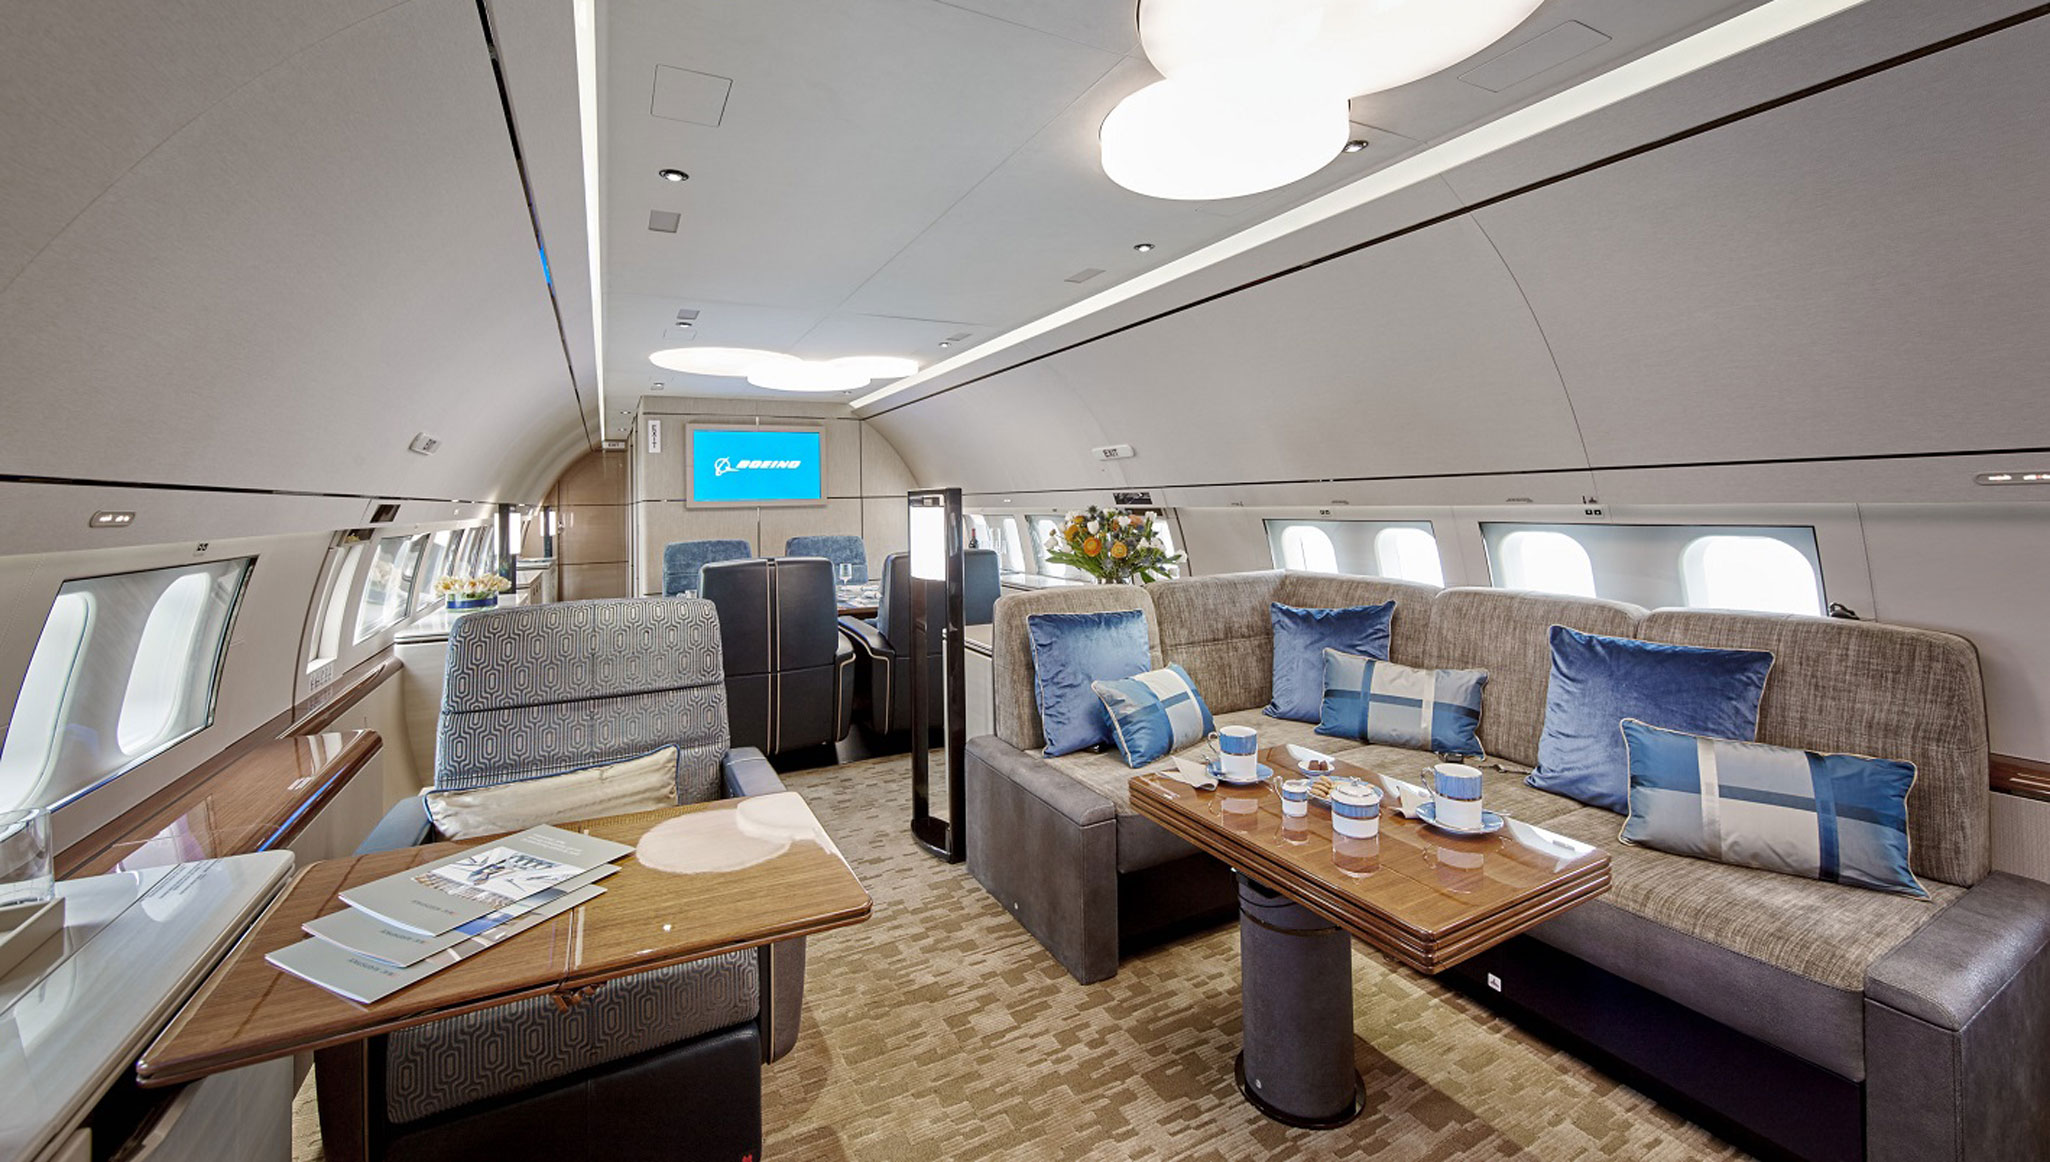 Cabin Comforts in the Spotlight | Business Aviation News